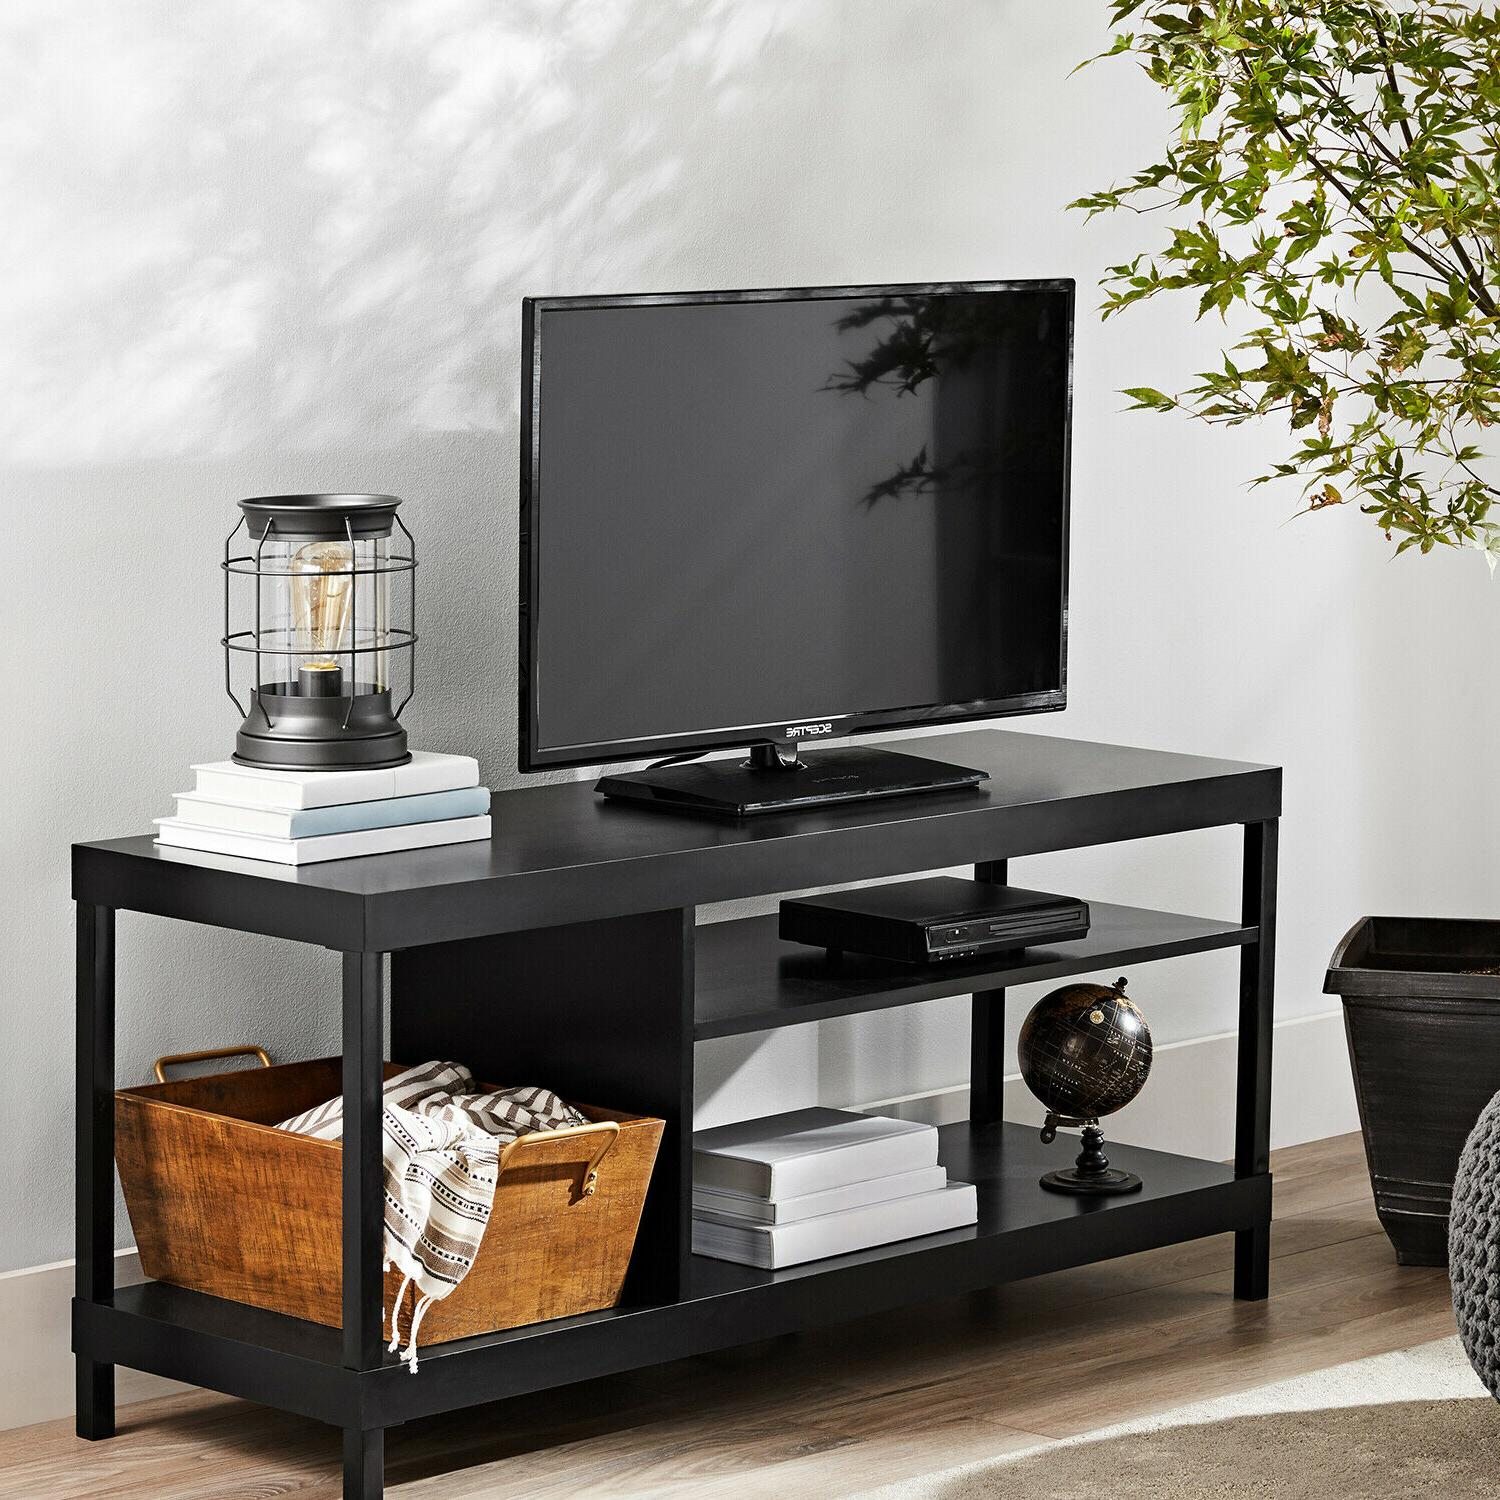 "Wood TV Stand 45"" Entertainment Center Media Console Storage"